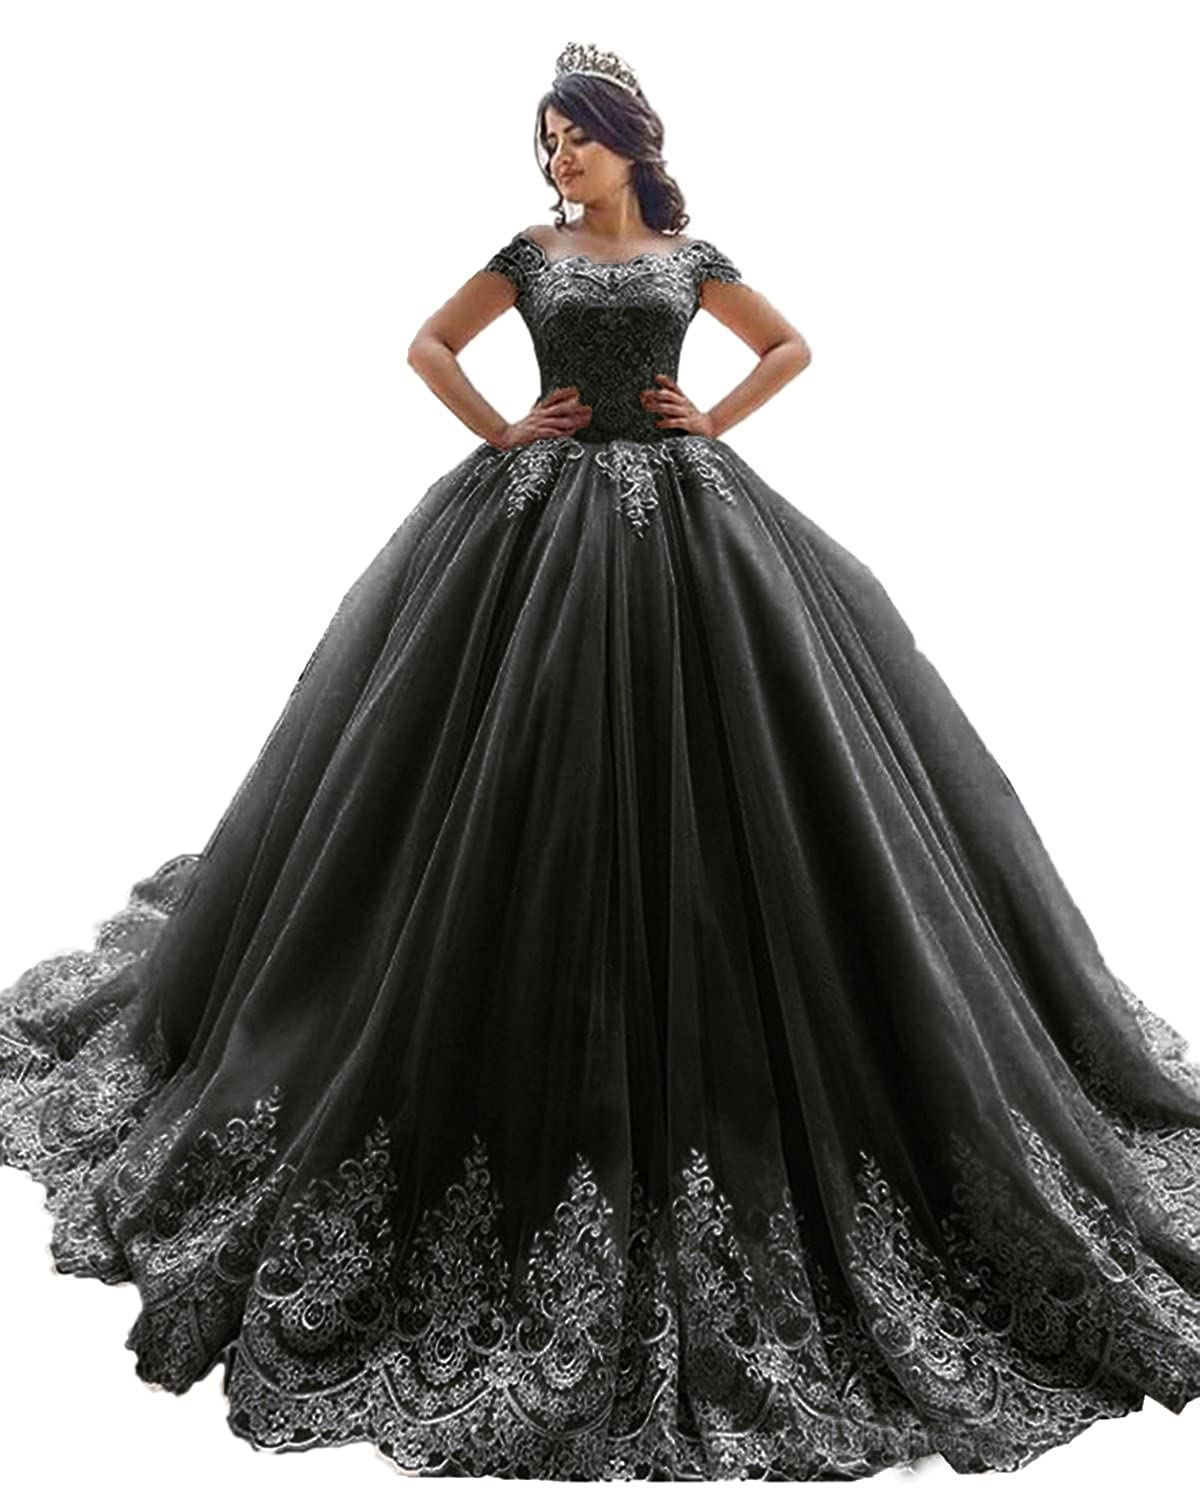 XSWPL Elegant Off The Shoulder Ball Gowns Prom Dress for Sweet 16 ...